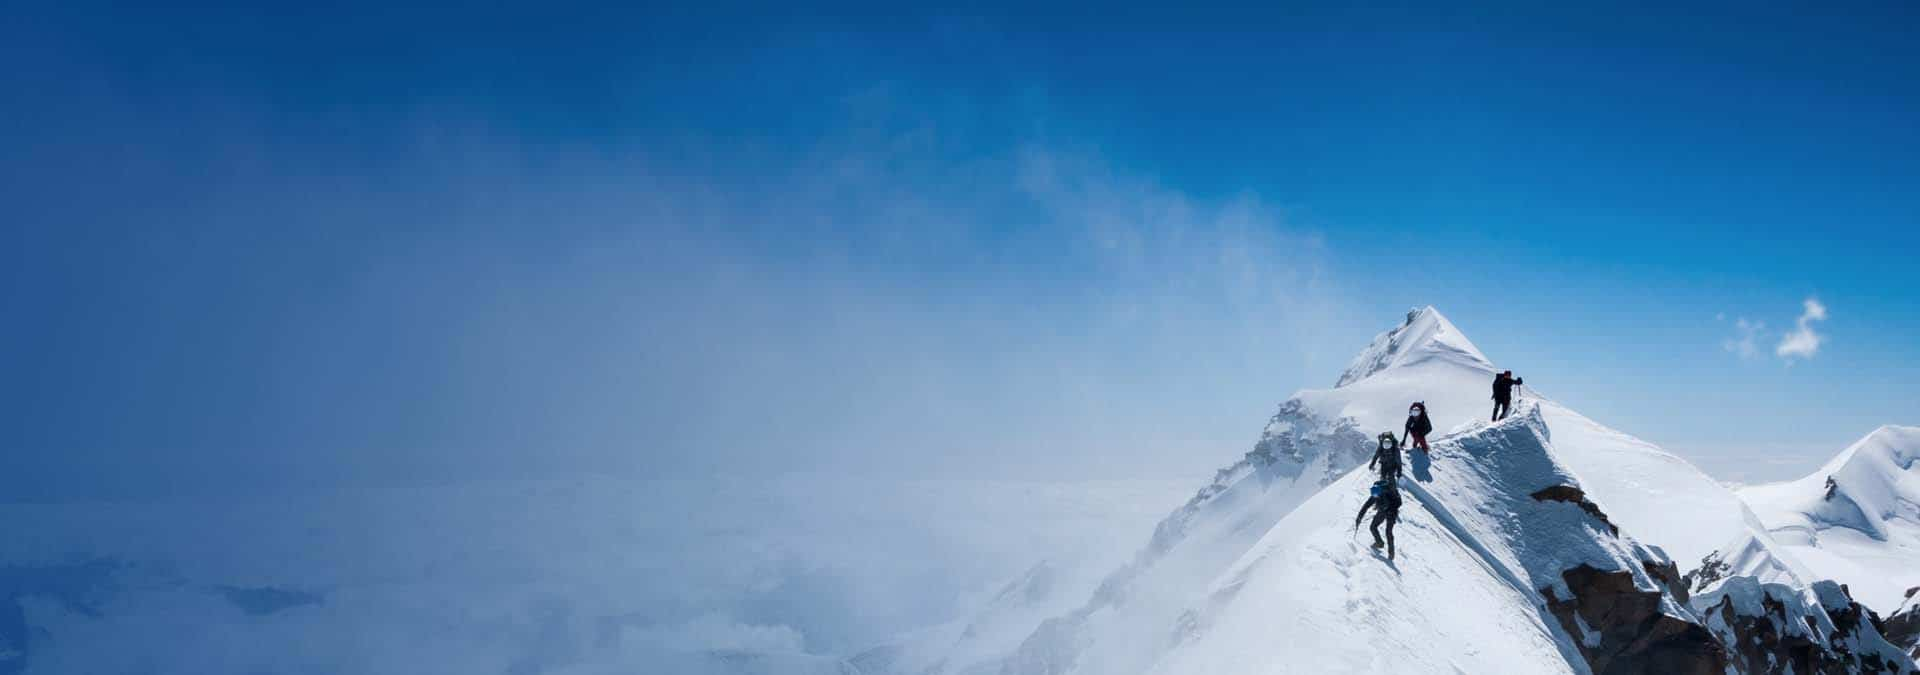 snow-covered mountain with climbers near the top